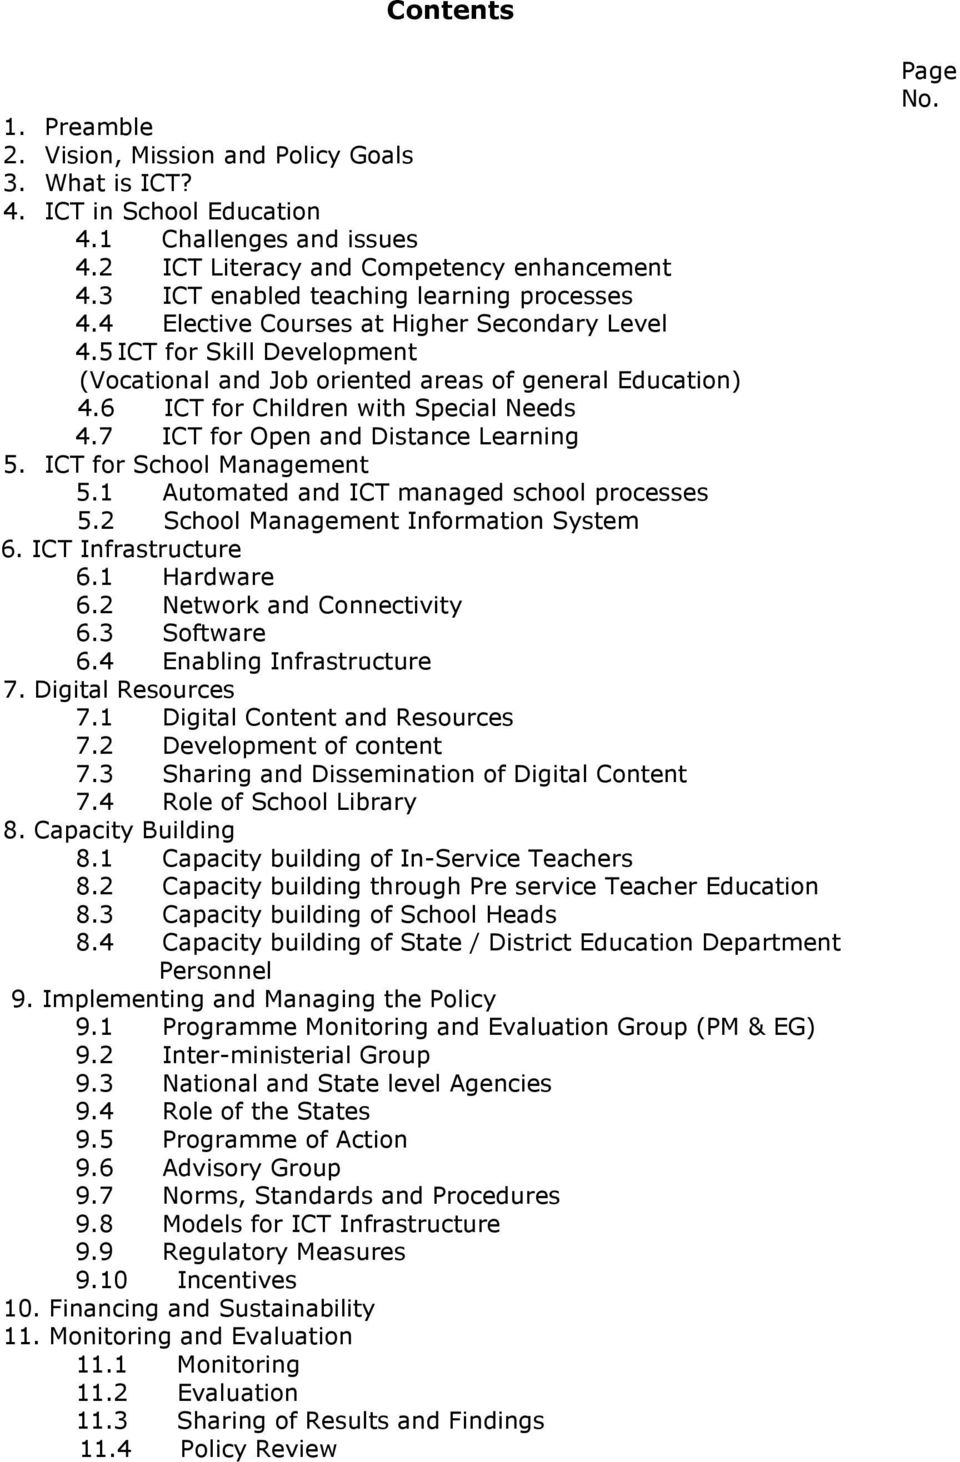 6 ICT for Children with Special Needs 4.7 ICT for Open and Distance Learning 5. ICT for School Management 5.1 Automated and ICT managed school processes 5.2 School Management Information System 6.